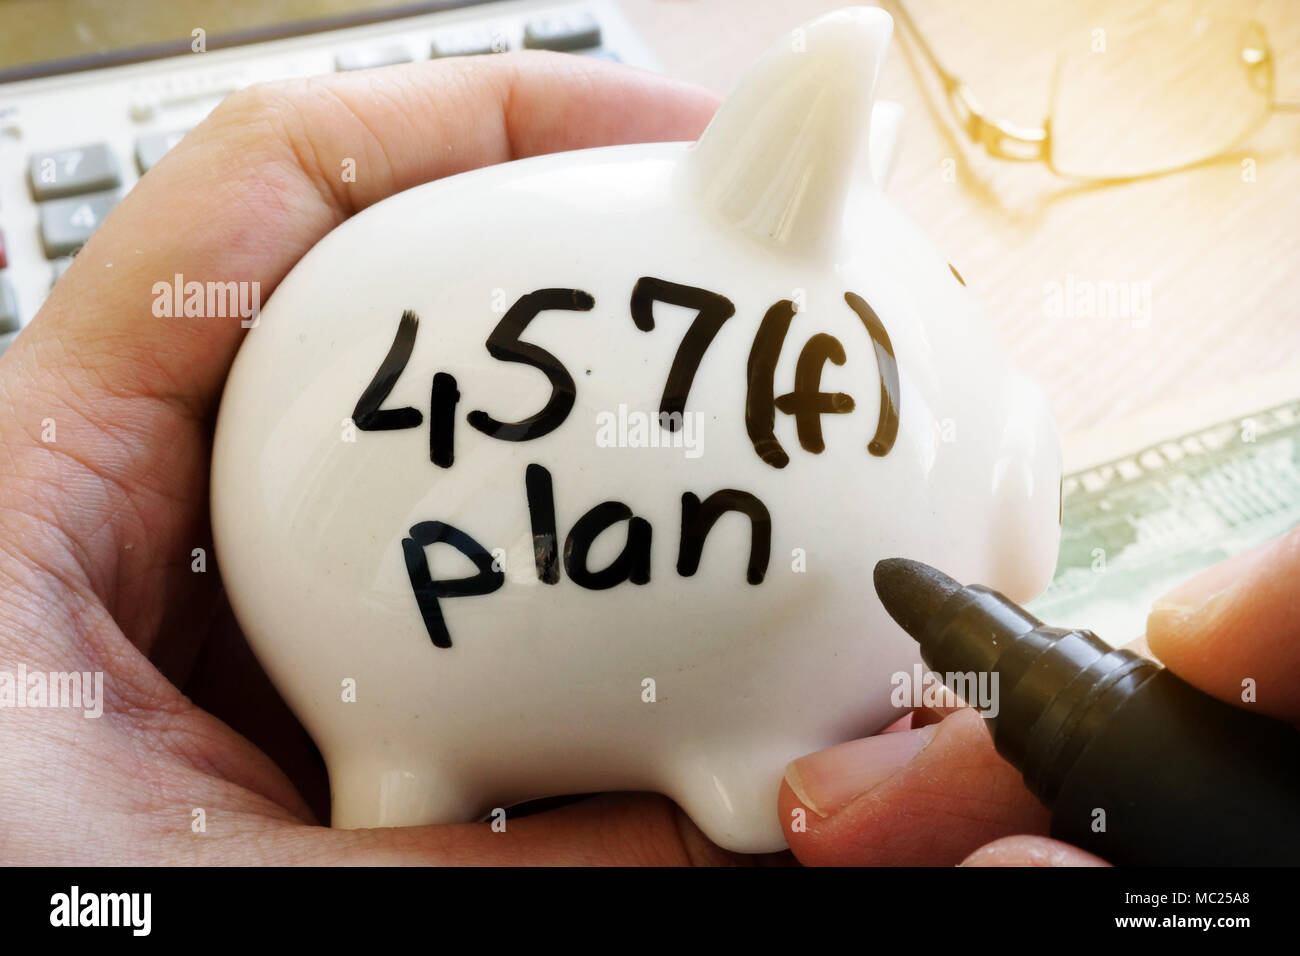 Piggy bank with sign 457f plan. Pension plan. - Stock Image